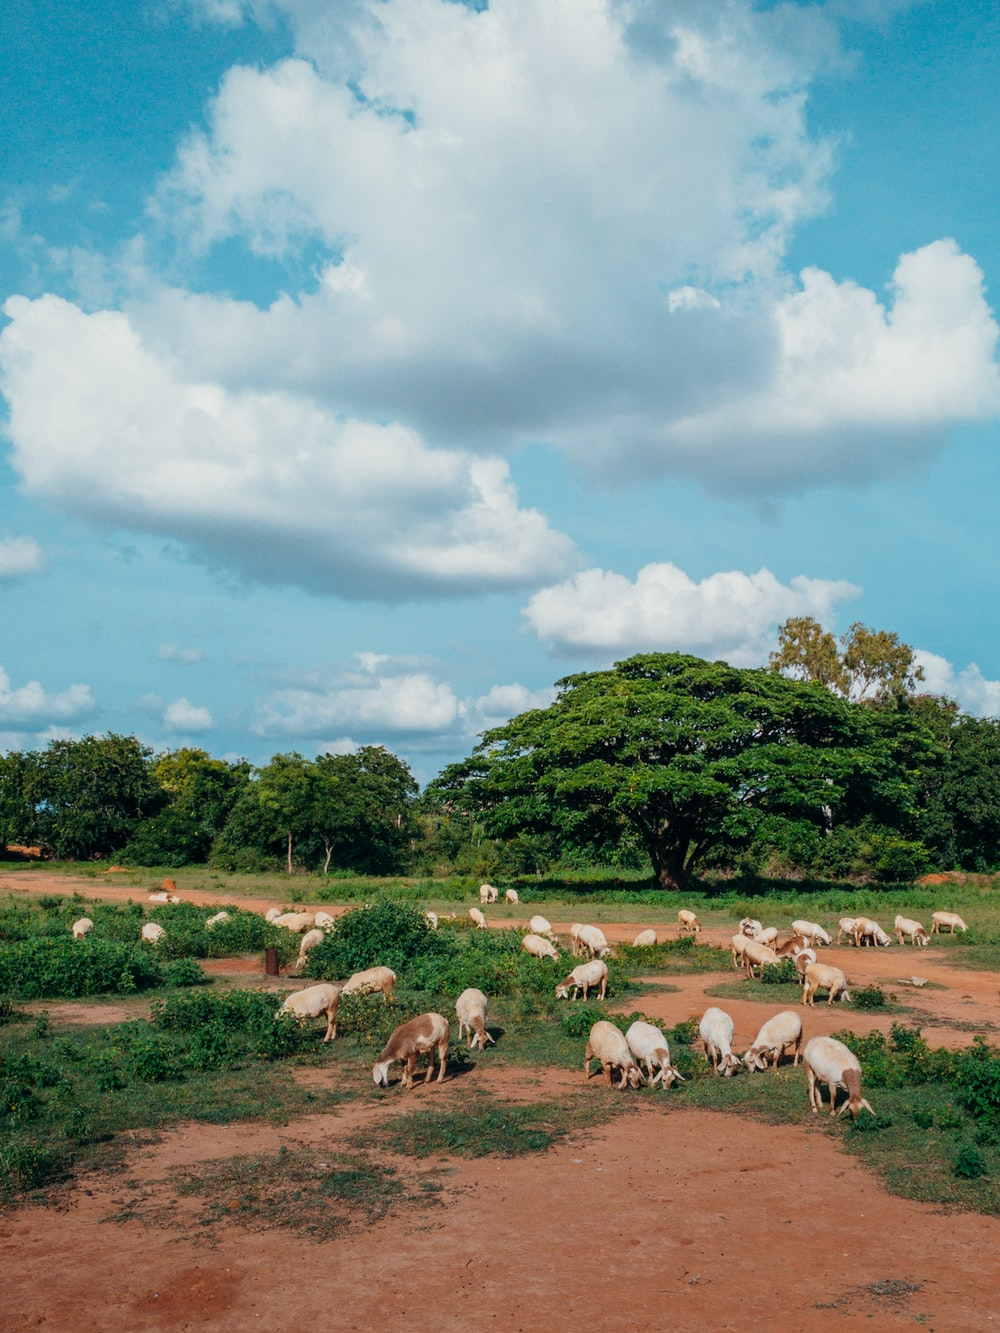 herd of sheep on green grass field under white clouds and blue sky during daytime